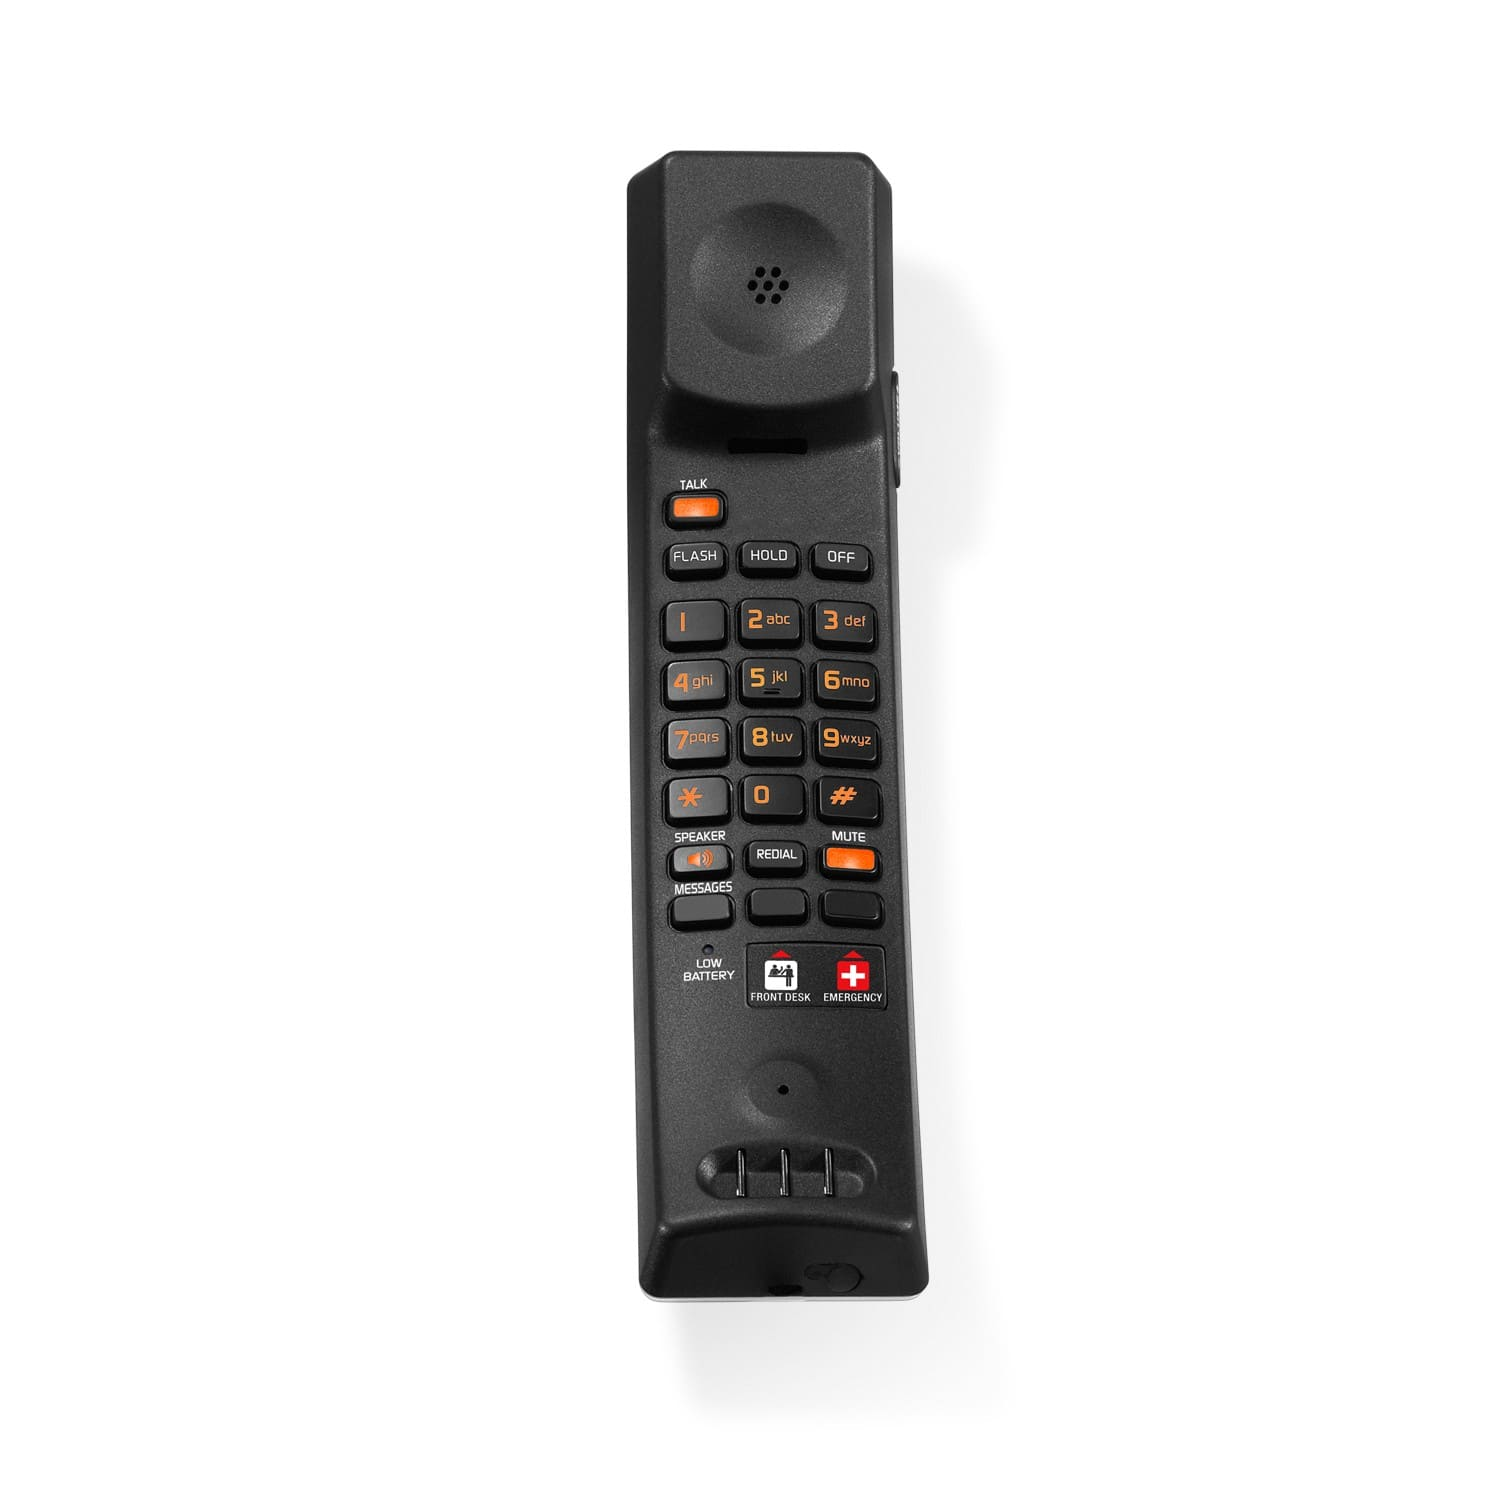 Image of Contemporary Analog Master Corded-Cordless Phone with Accessory Handset | CTM-A2510-USB Silver & Black